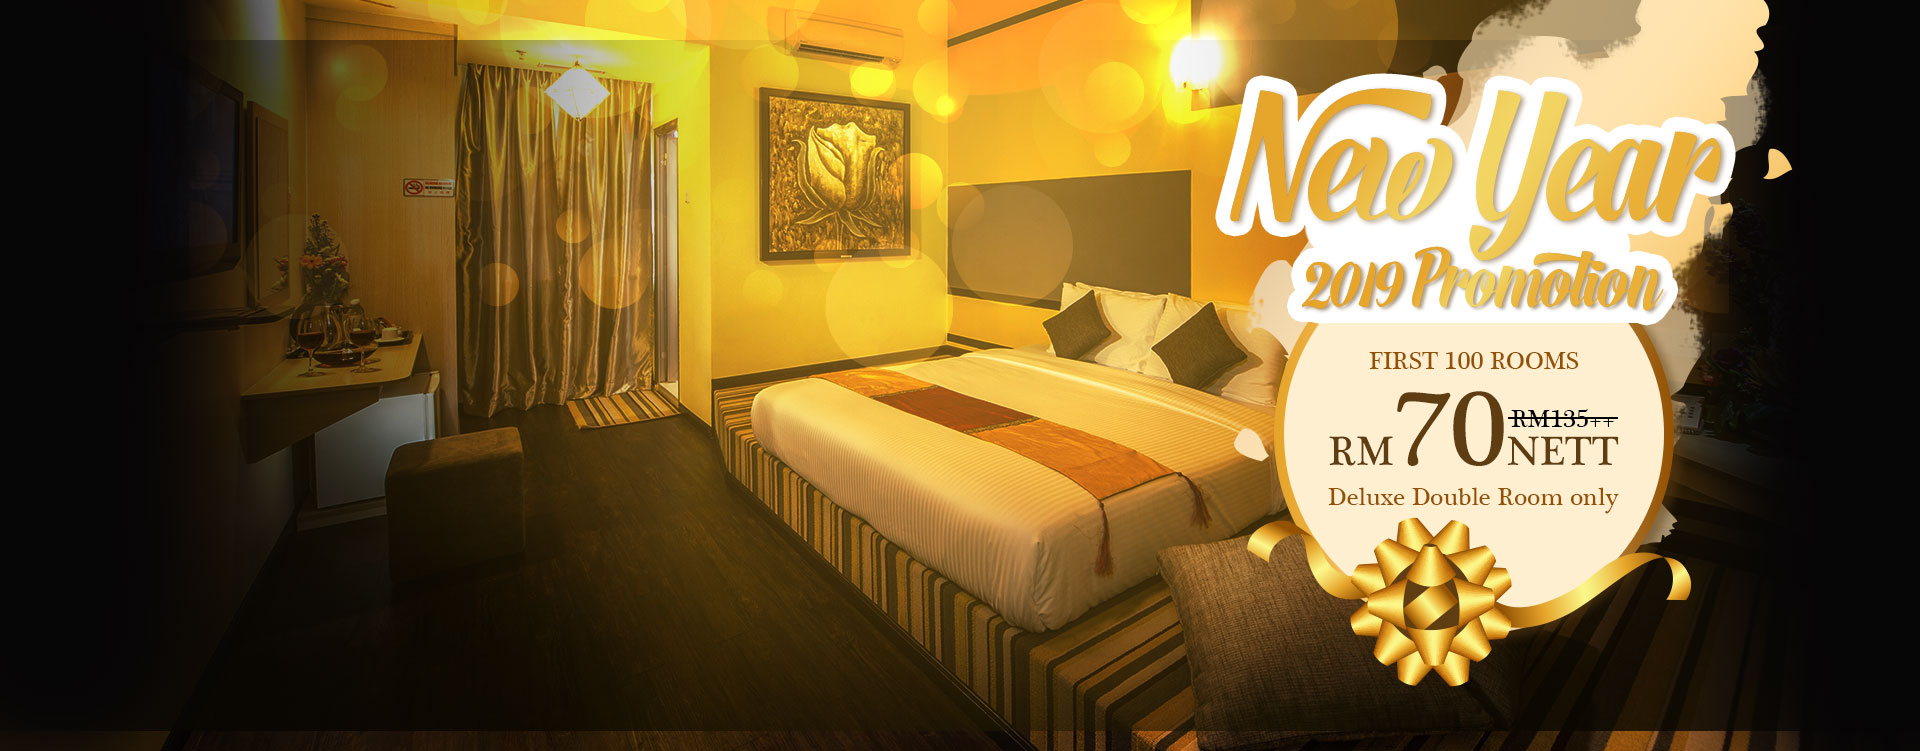 New Year 2019 Promotion - Deluxe Double Room RM70